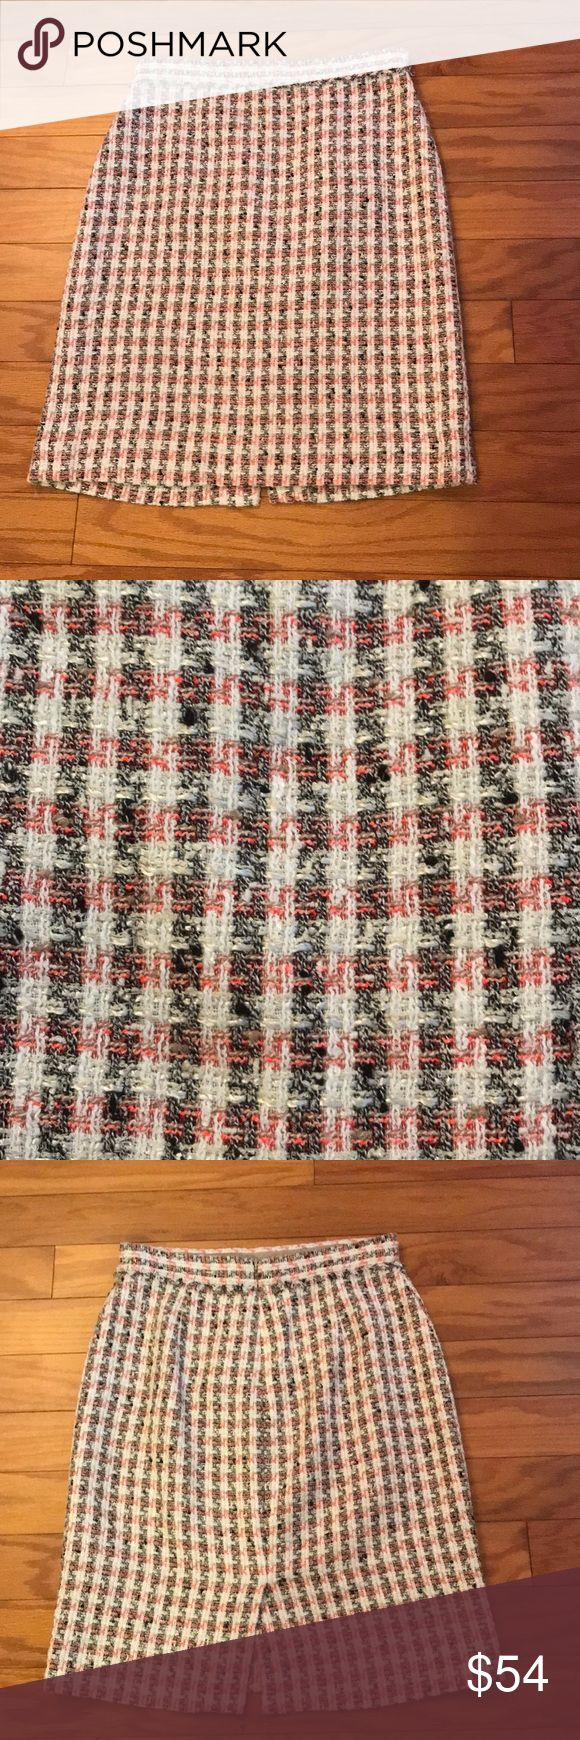 """J. Crew Collection Plaid Skirt J. Crew Collection Plaid Skirt. Size 4. Colors include white, black, tan, and bright salmon pink. 51% cotton. 24% viscose. 10% acrylic. 6% polyester. 6% polyamide. 3% other fiber. Lining: 100% acetate. Approx. 22 inches in length. Waist 14"""" across. Zipper back. Very little stretch in waist and body. J. Crew Skirts"""